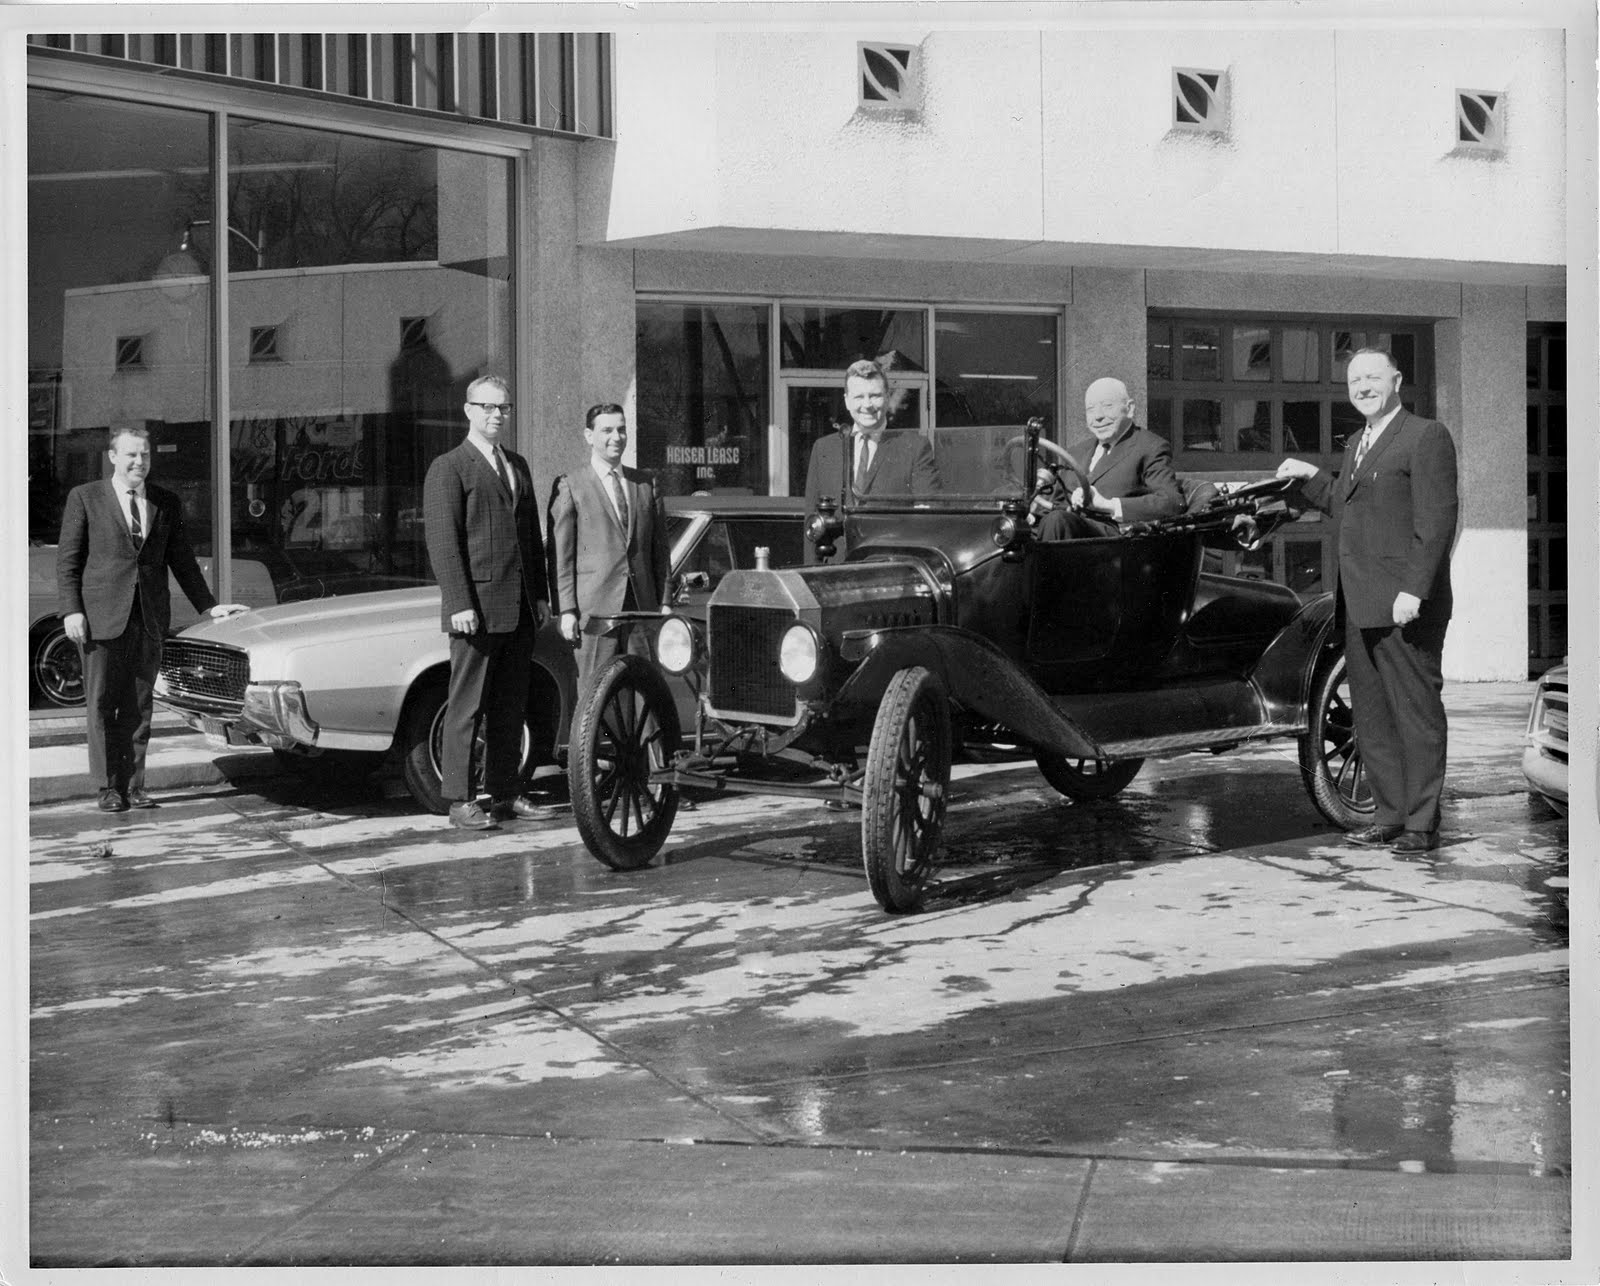 Heiser Automotive Group S History Heiser Automotive Group Blog